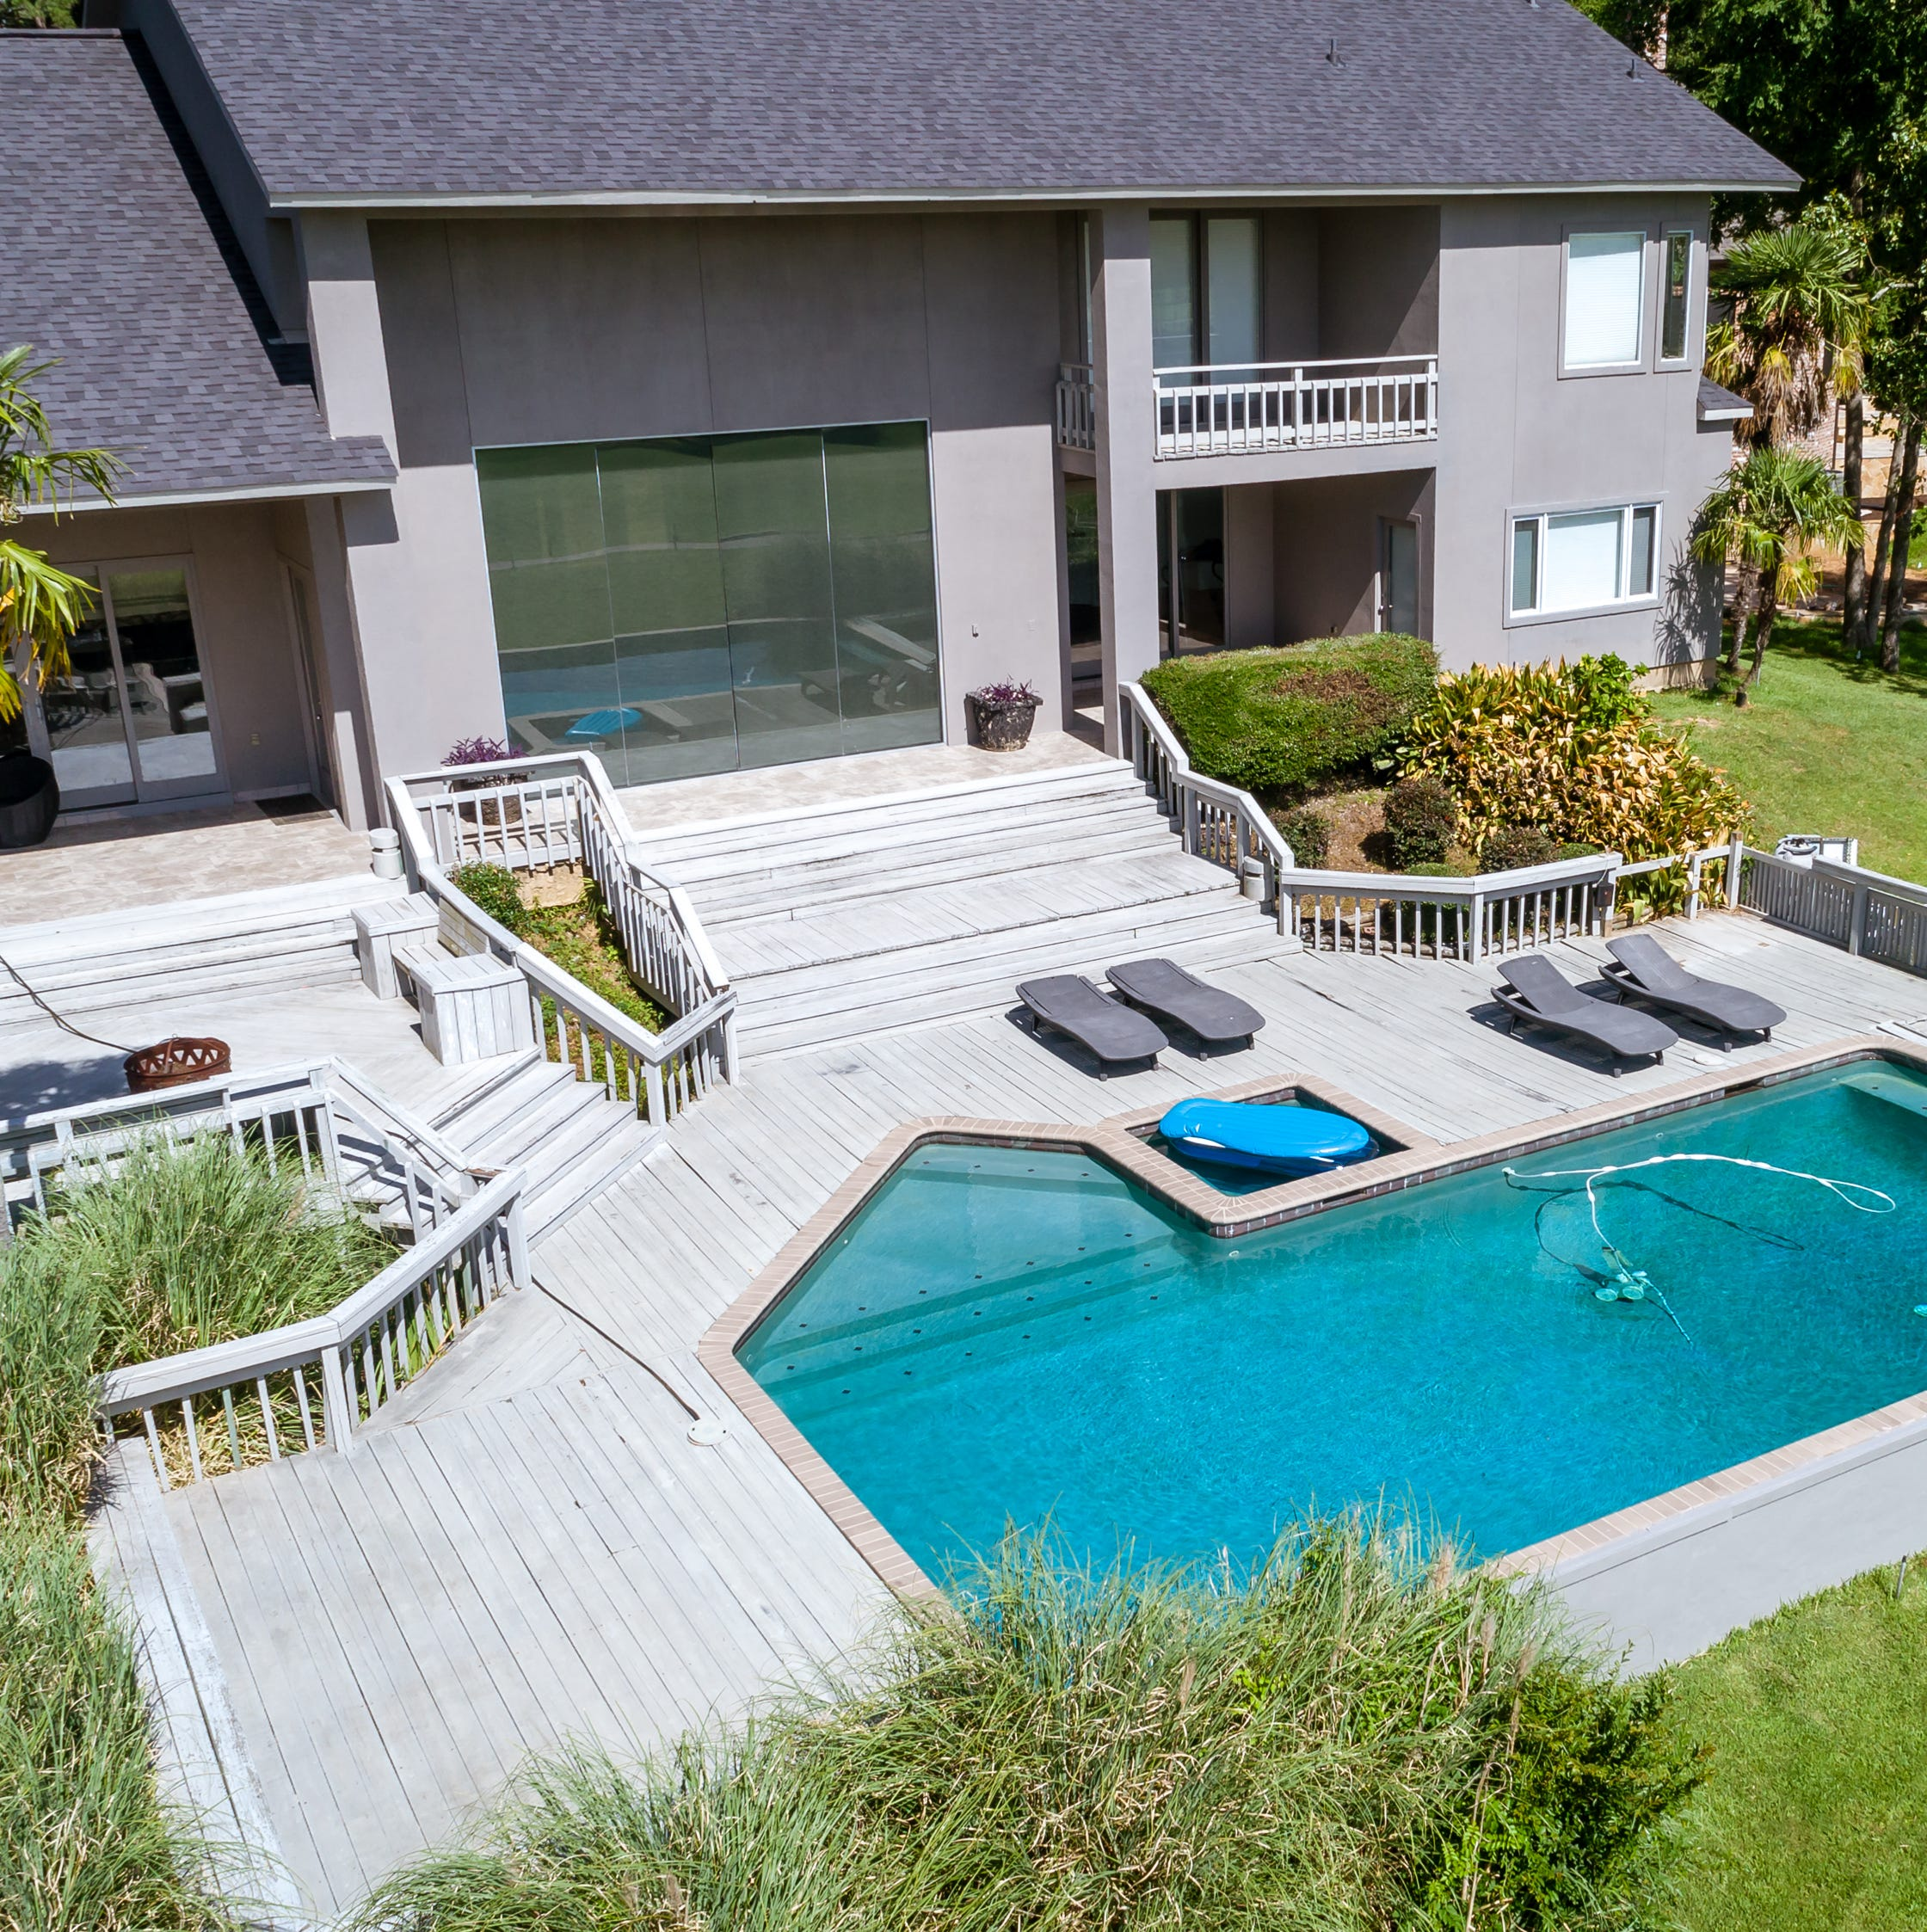 Enjoy country club lifestyle in stunning Southern Trace mansion